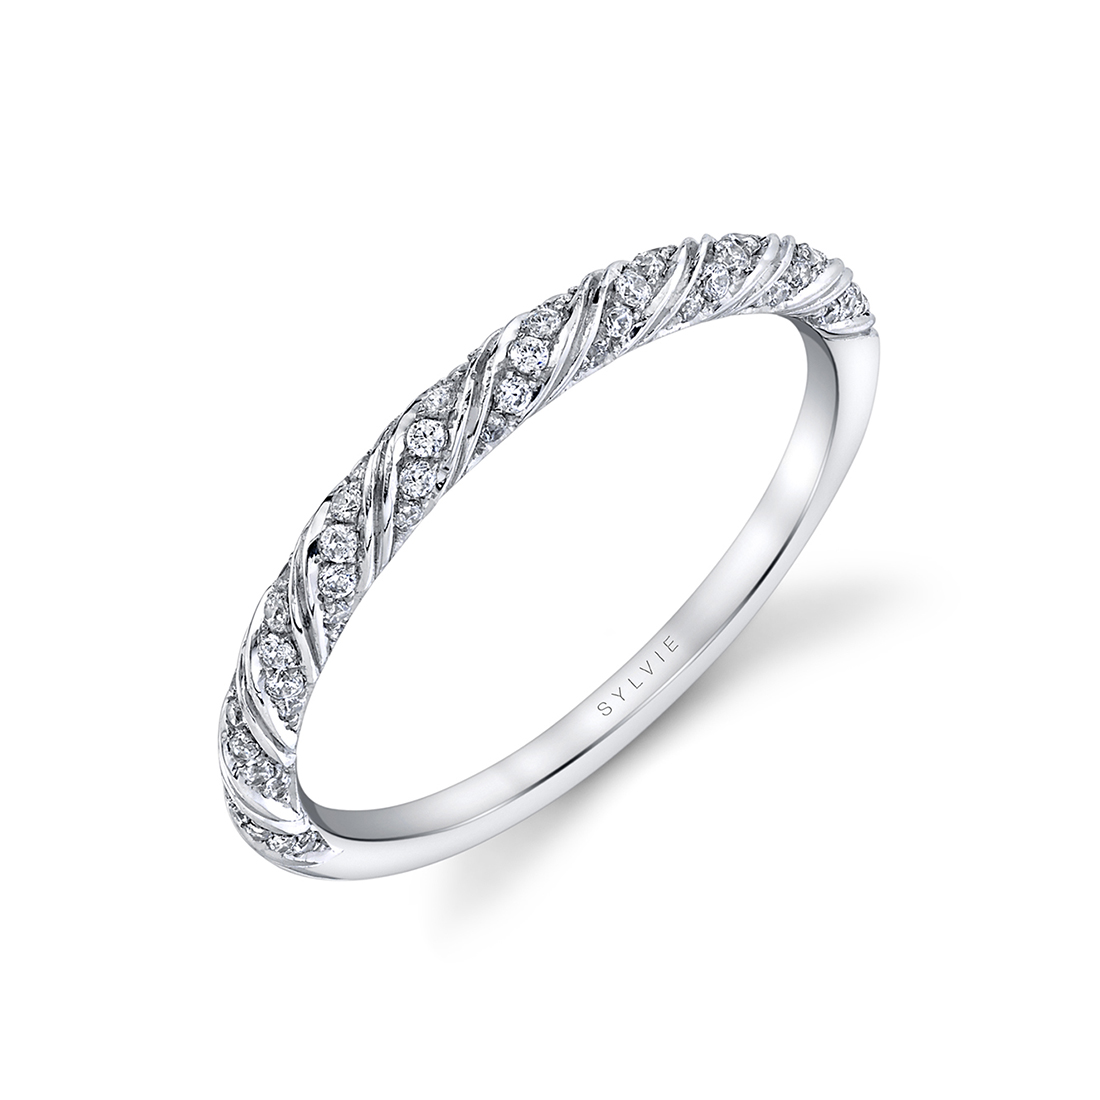 Unique Wedding Band in White Gold